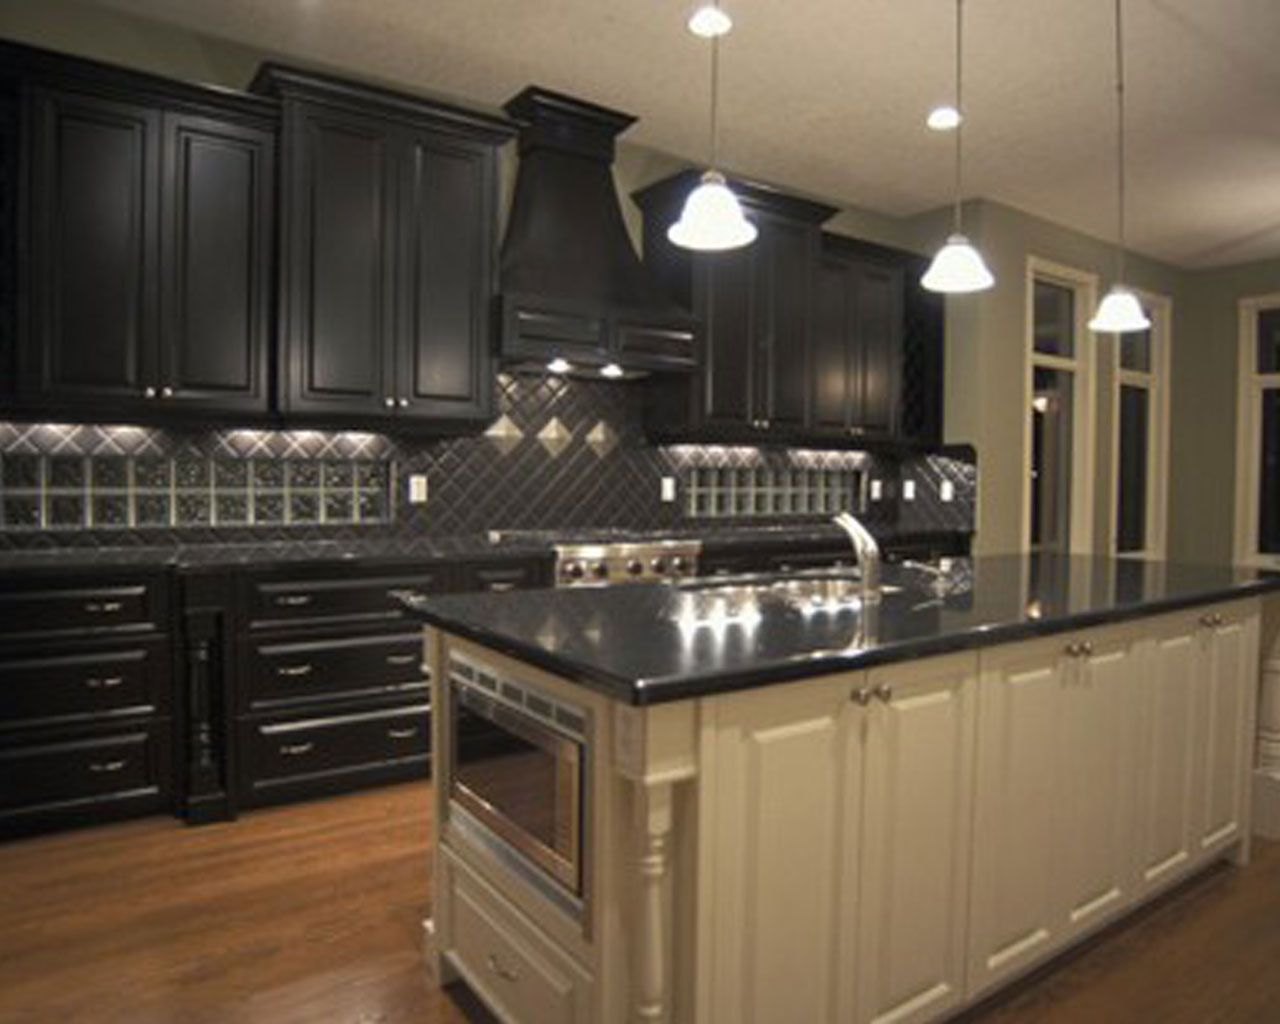 Finest Kitchens Finest Design Black Kitchen Cabinets Wallpapers  New House .